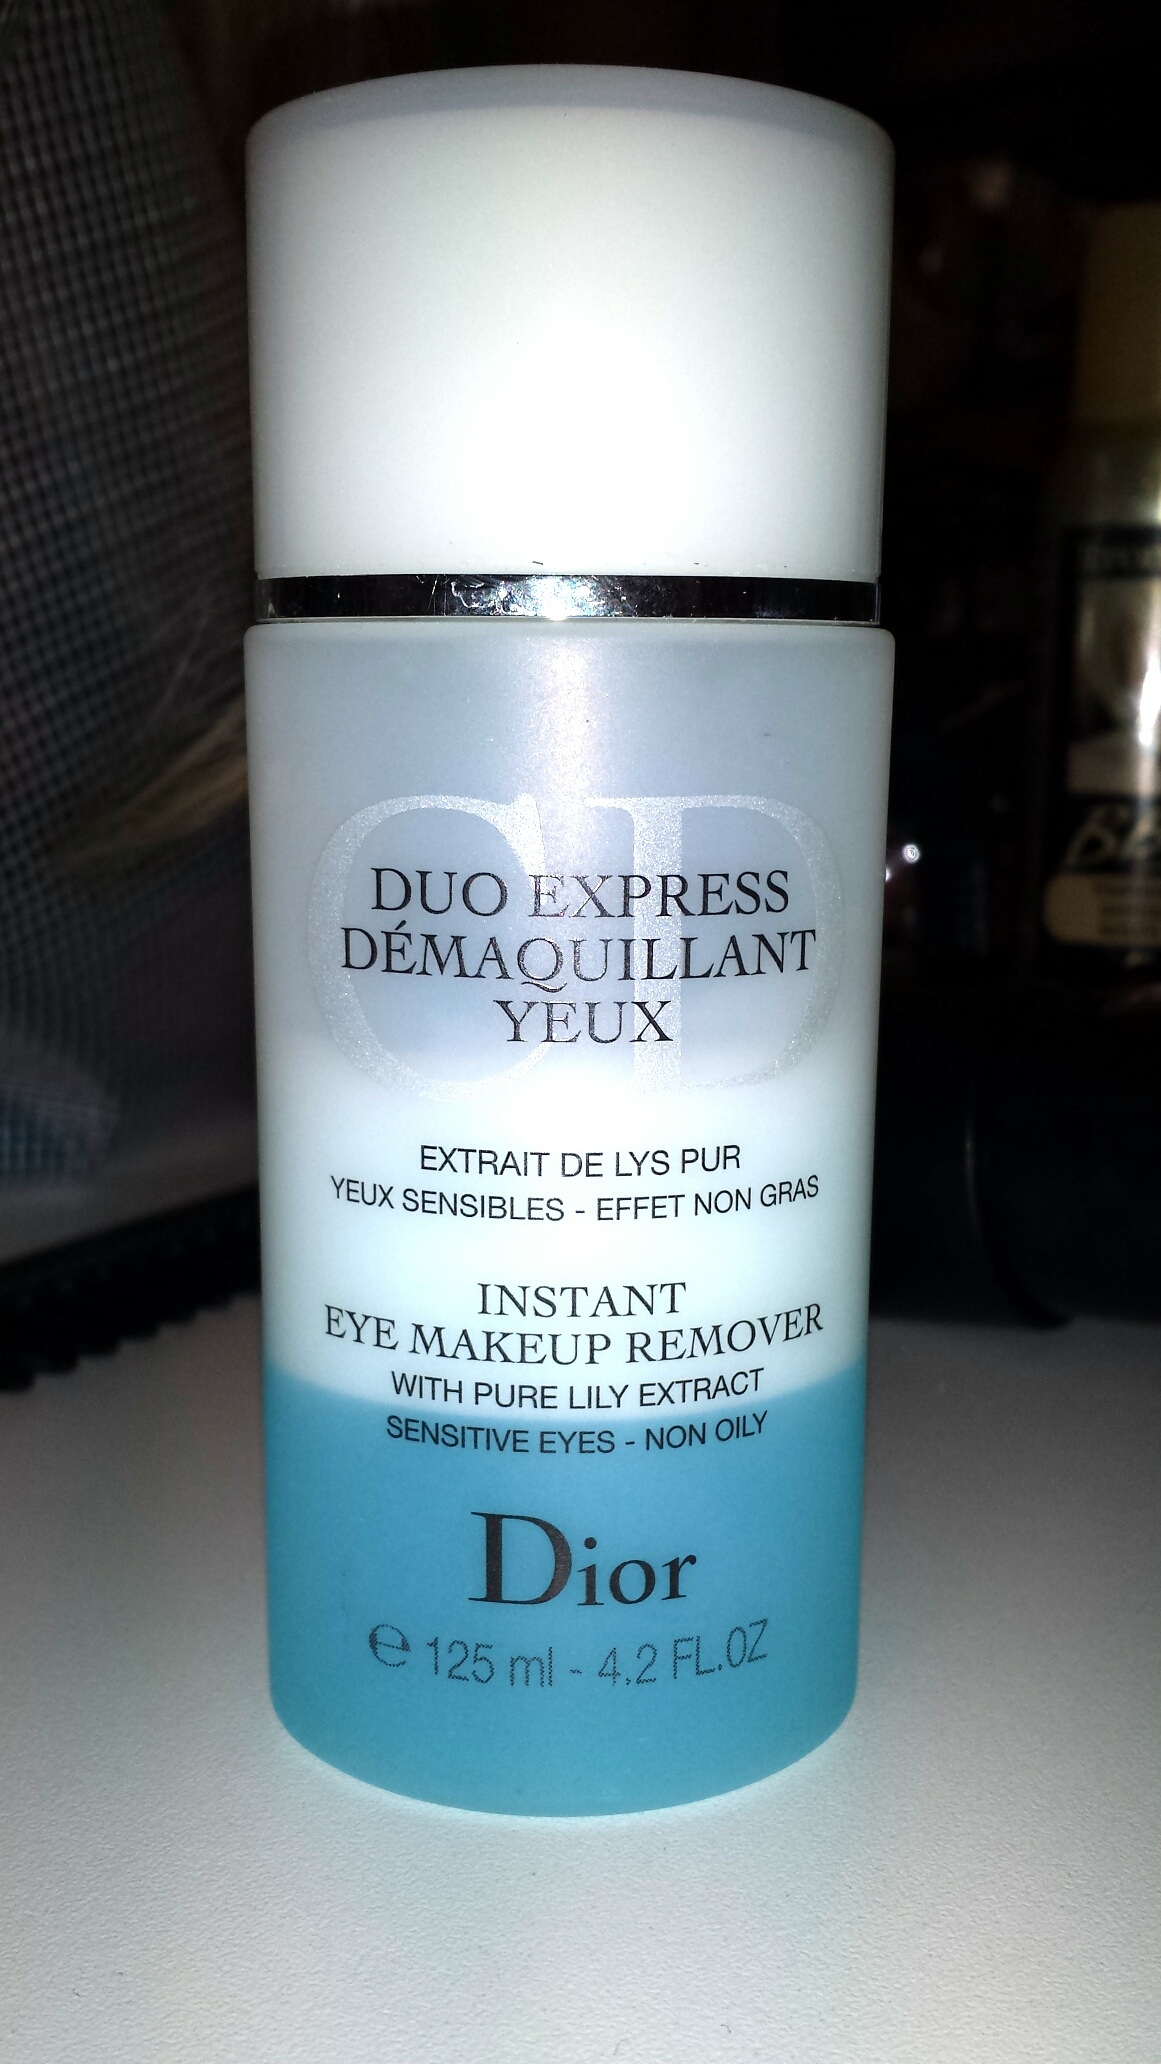 The best eye makeup remover